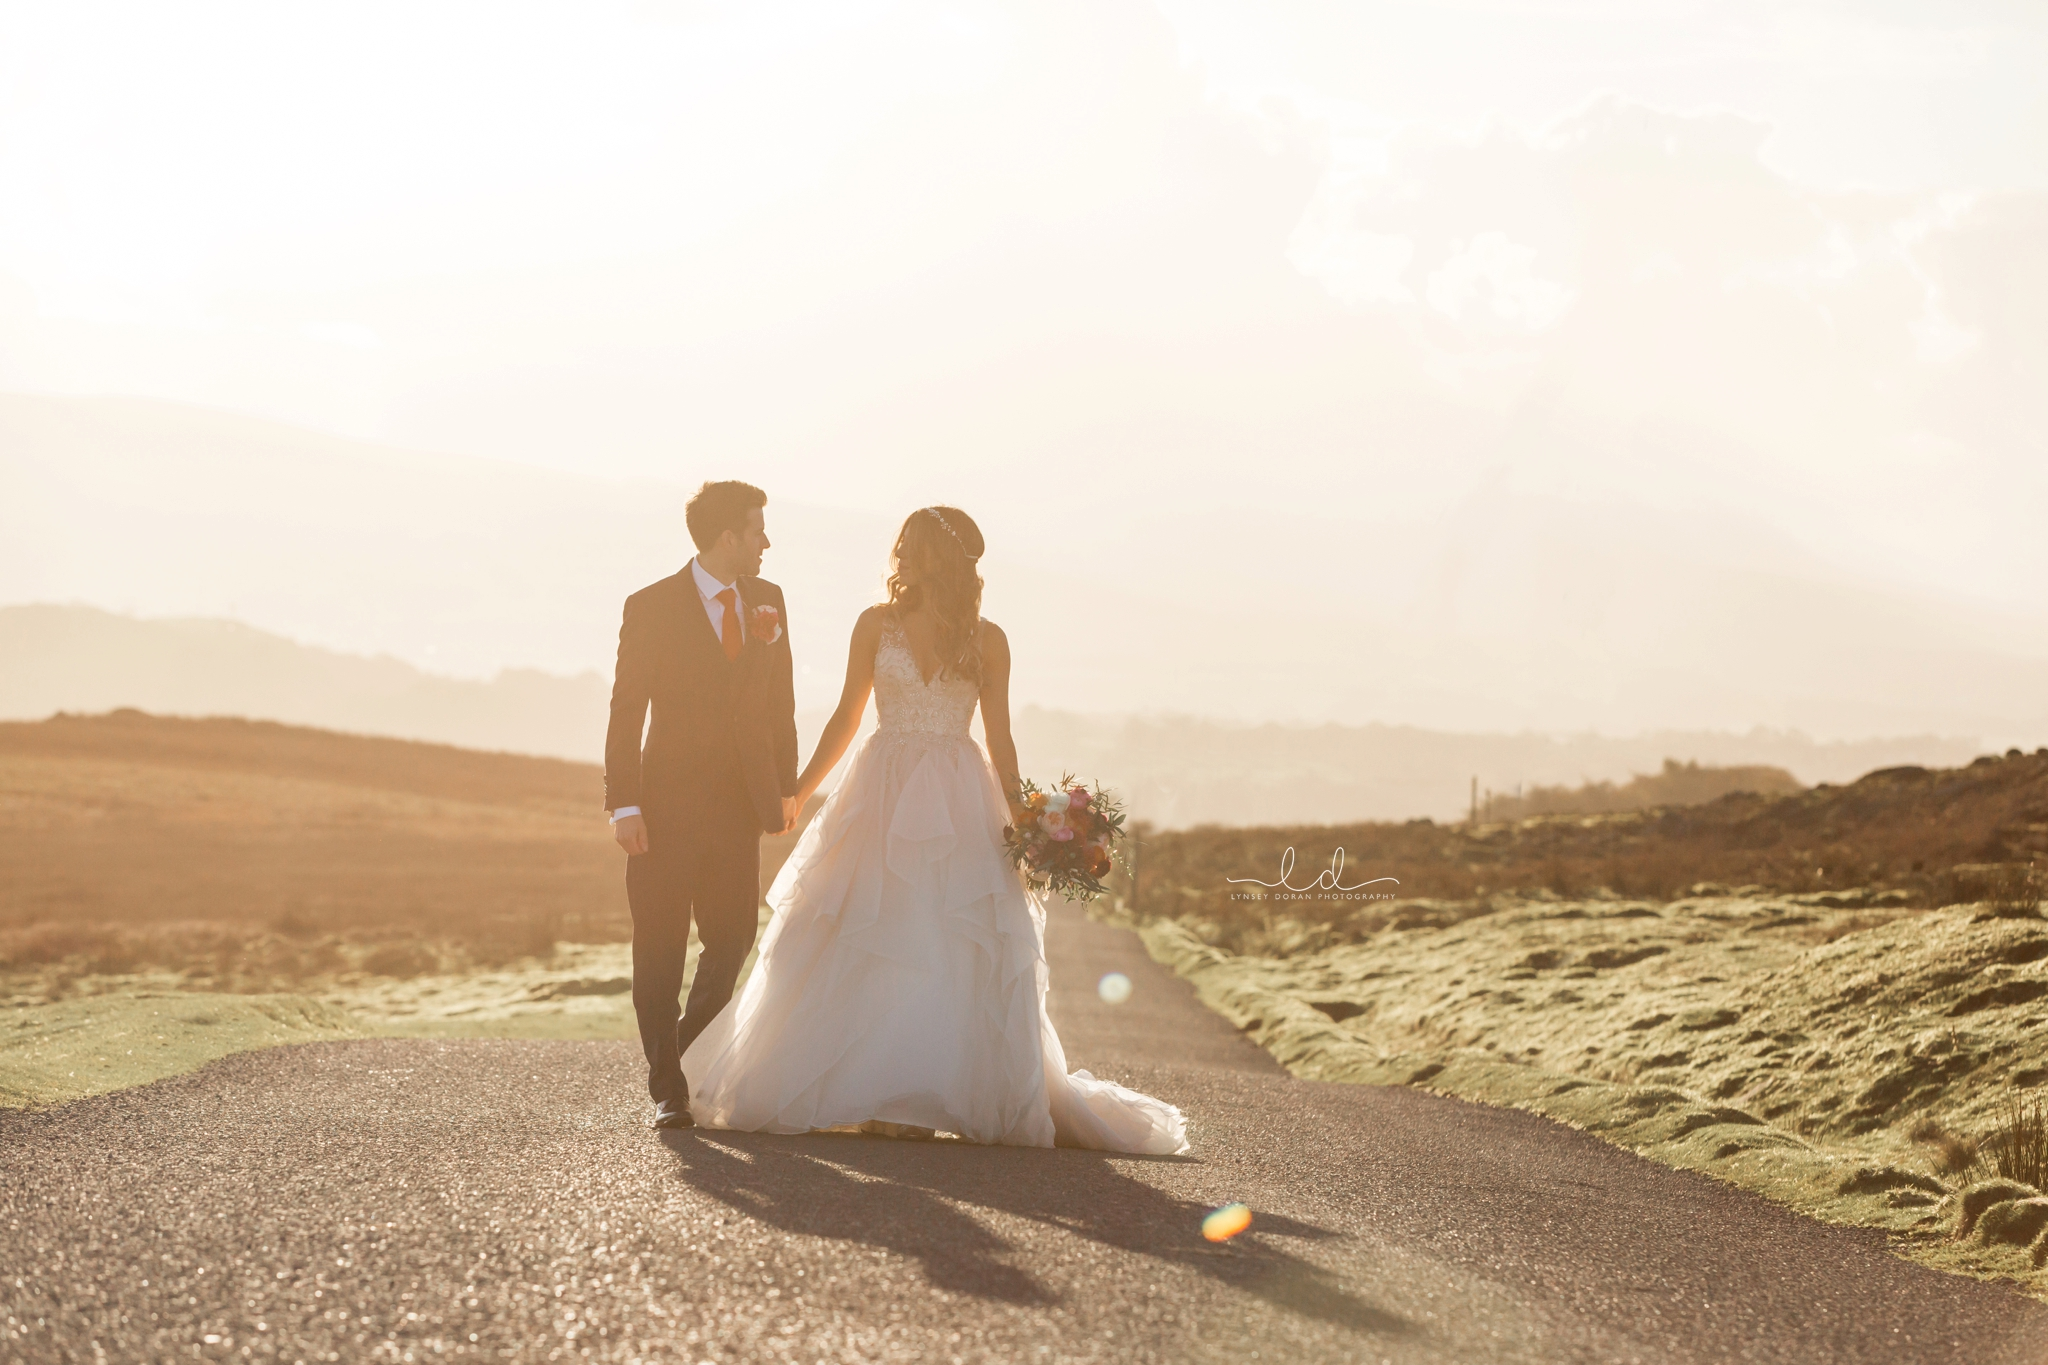 Rustic Wedding Photographers Yorkshire | Boho wedding photographers Yorkshire_0026